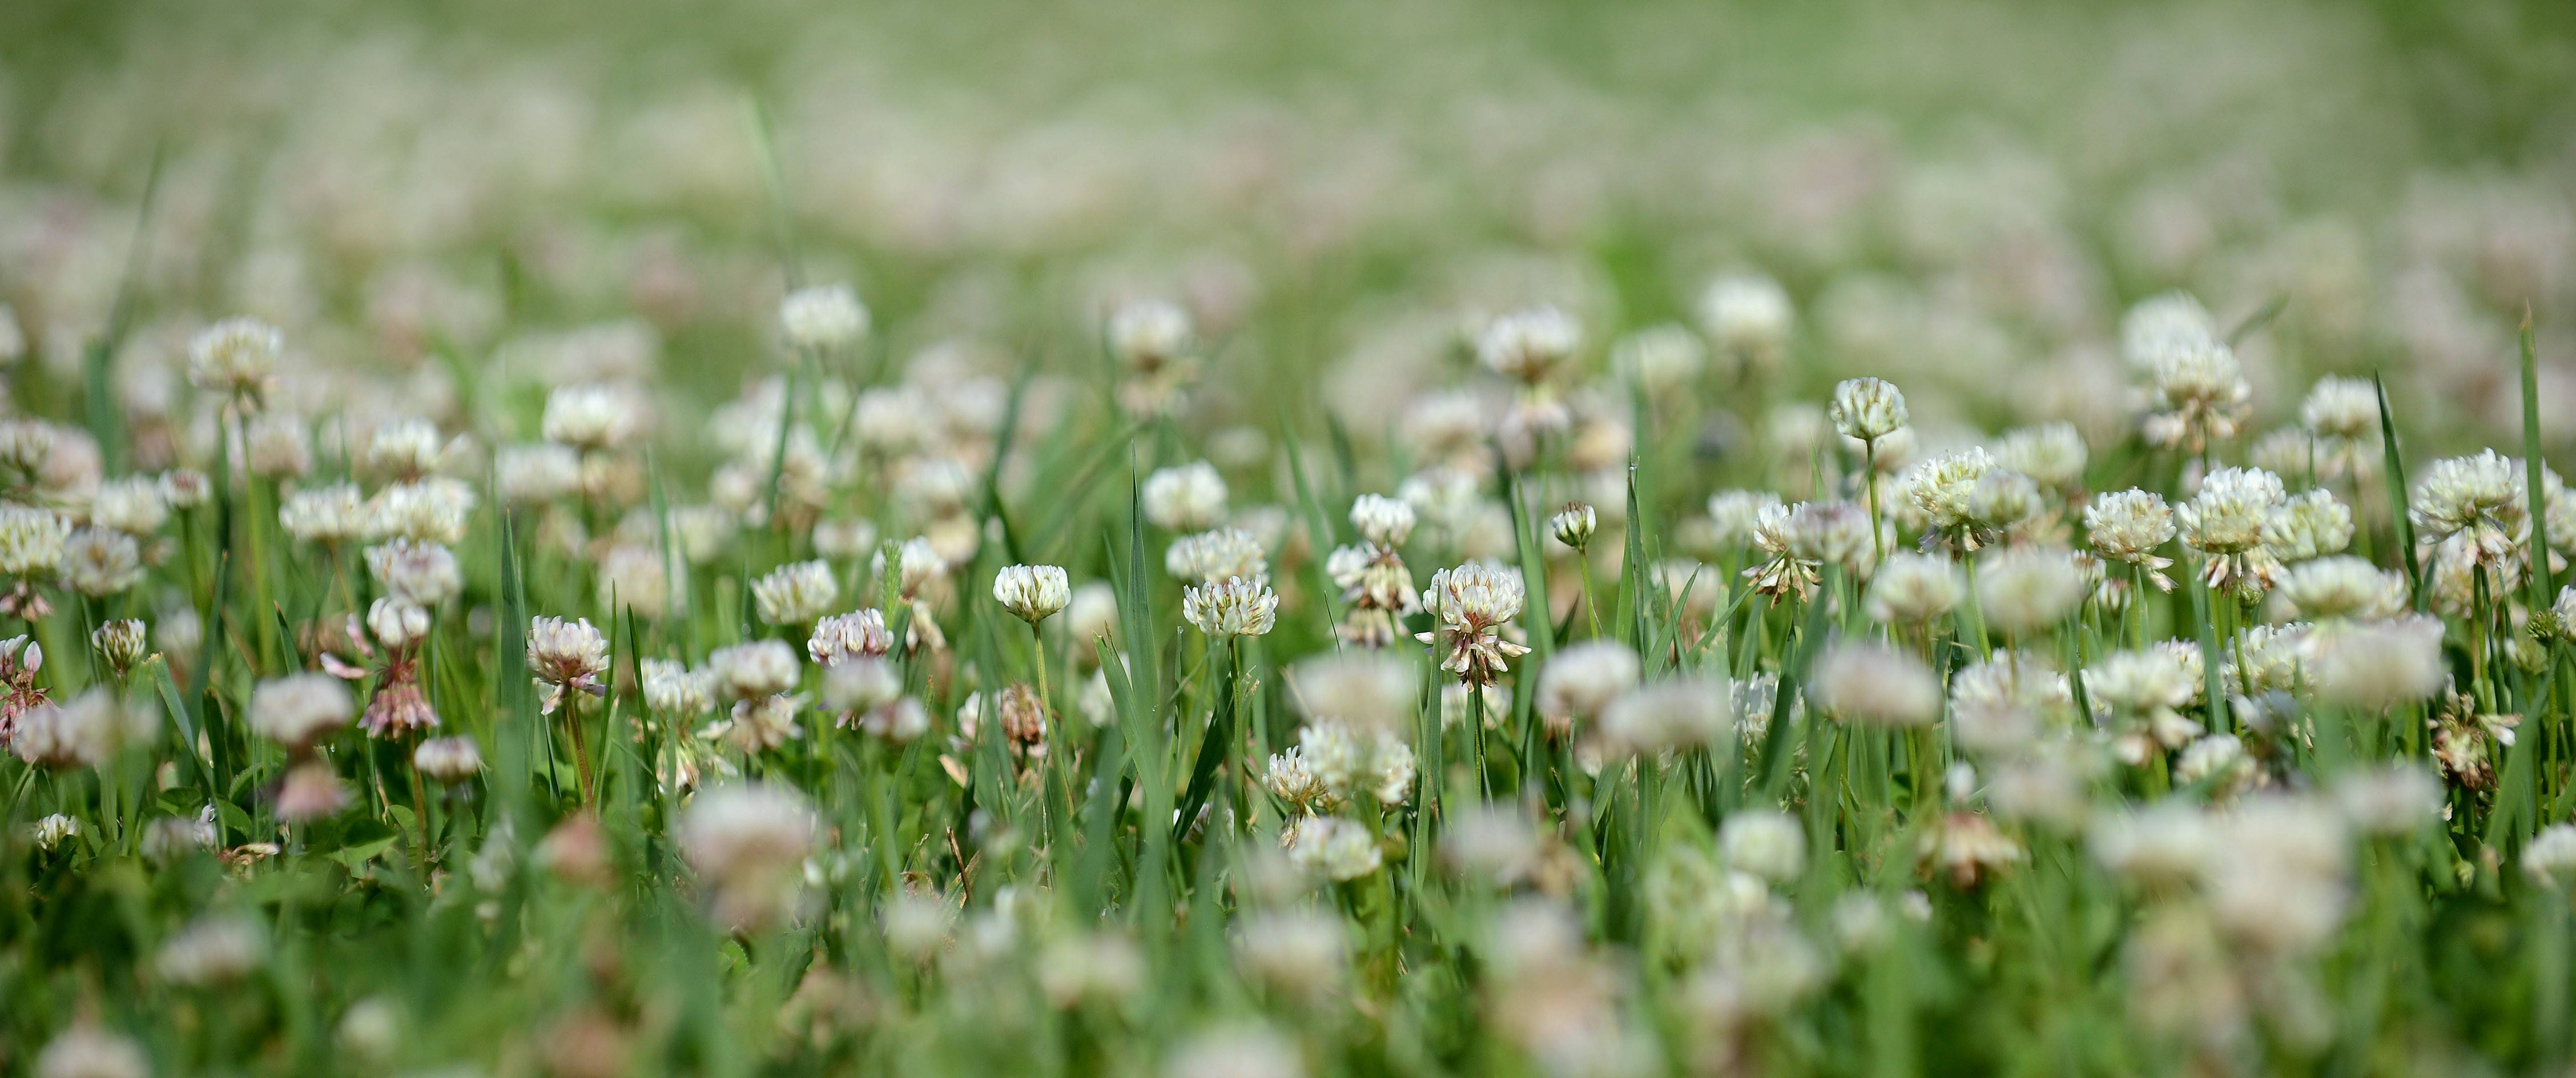 White clover, sometimes called Dutch clover, is found in Kane County.